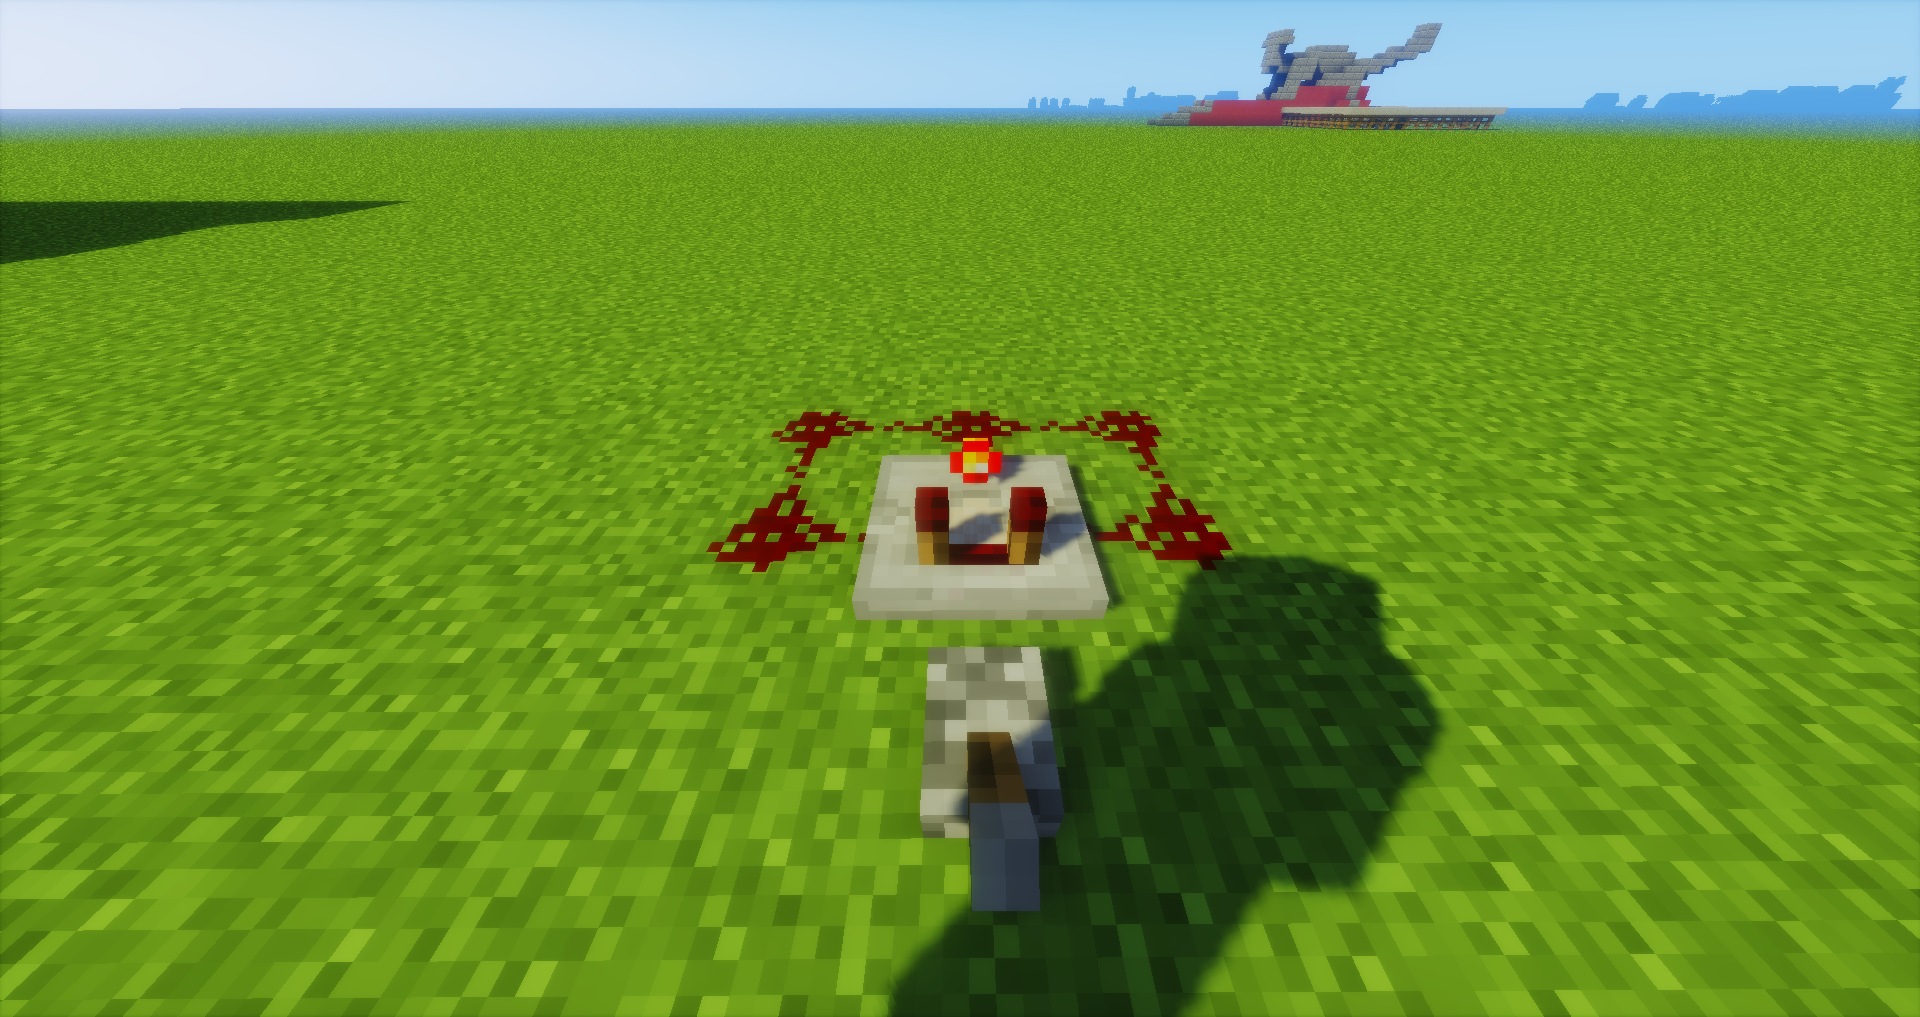 WHATS THE SMALLEST REDSTONE CLOCK THAT I CAN MAKE - Redstone